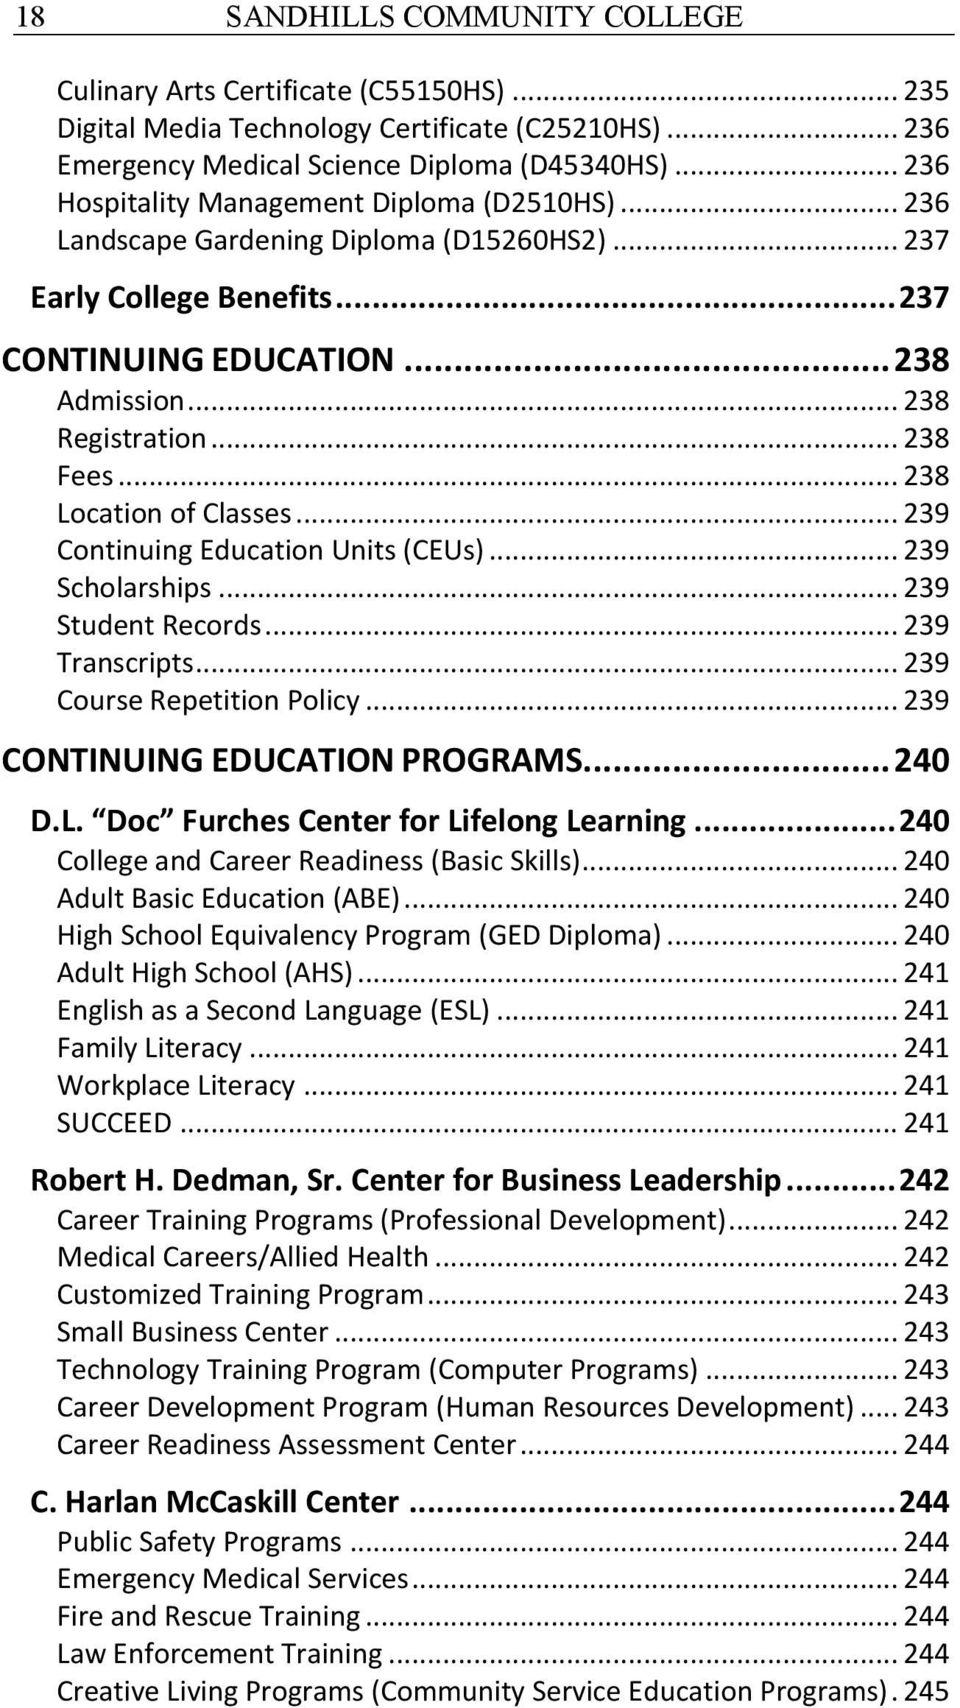 .. 238 Location of Classes... 239 Continuing Education Units (CEUs)... 239 Scholarships... 239 Student Records... 239 Transcripts... 239 Course Repetition Policy... 239 CONTINUING EDUCATION PROGRAMS.